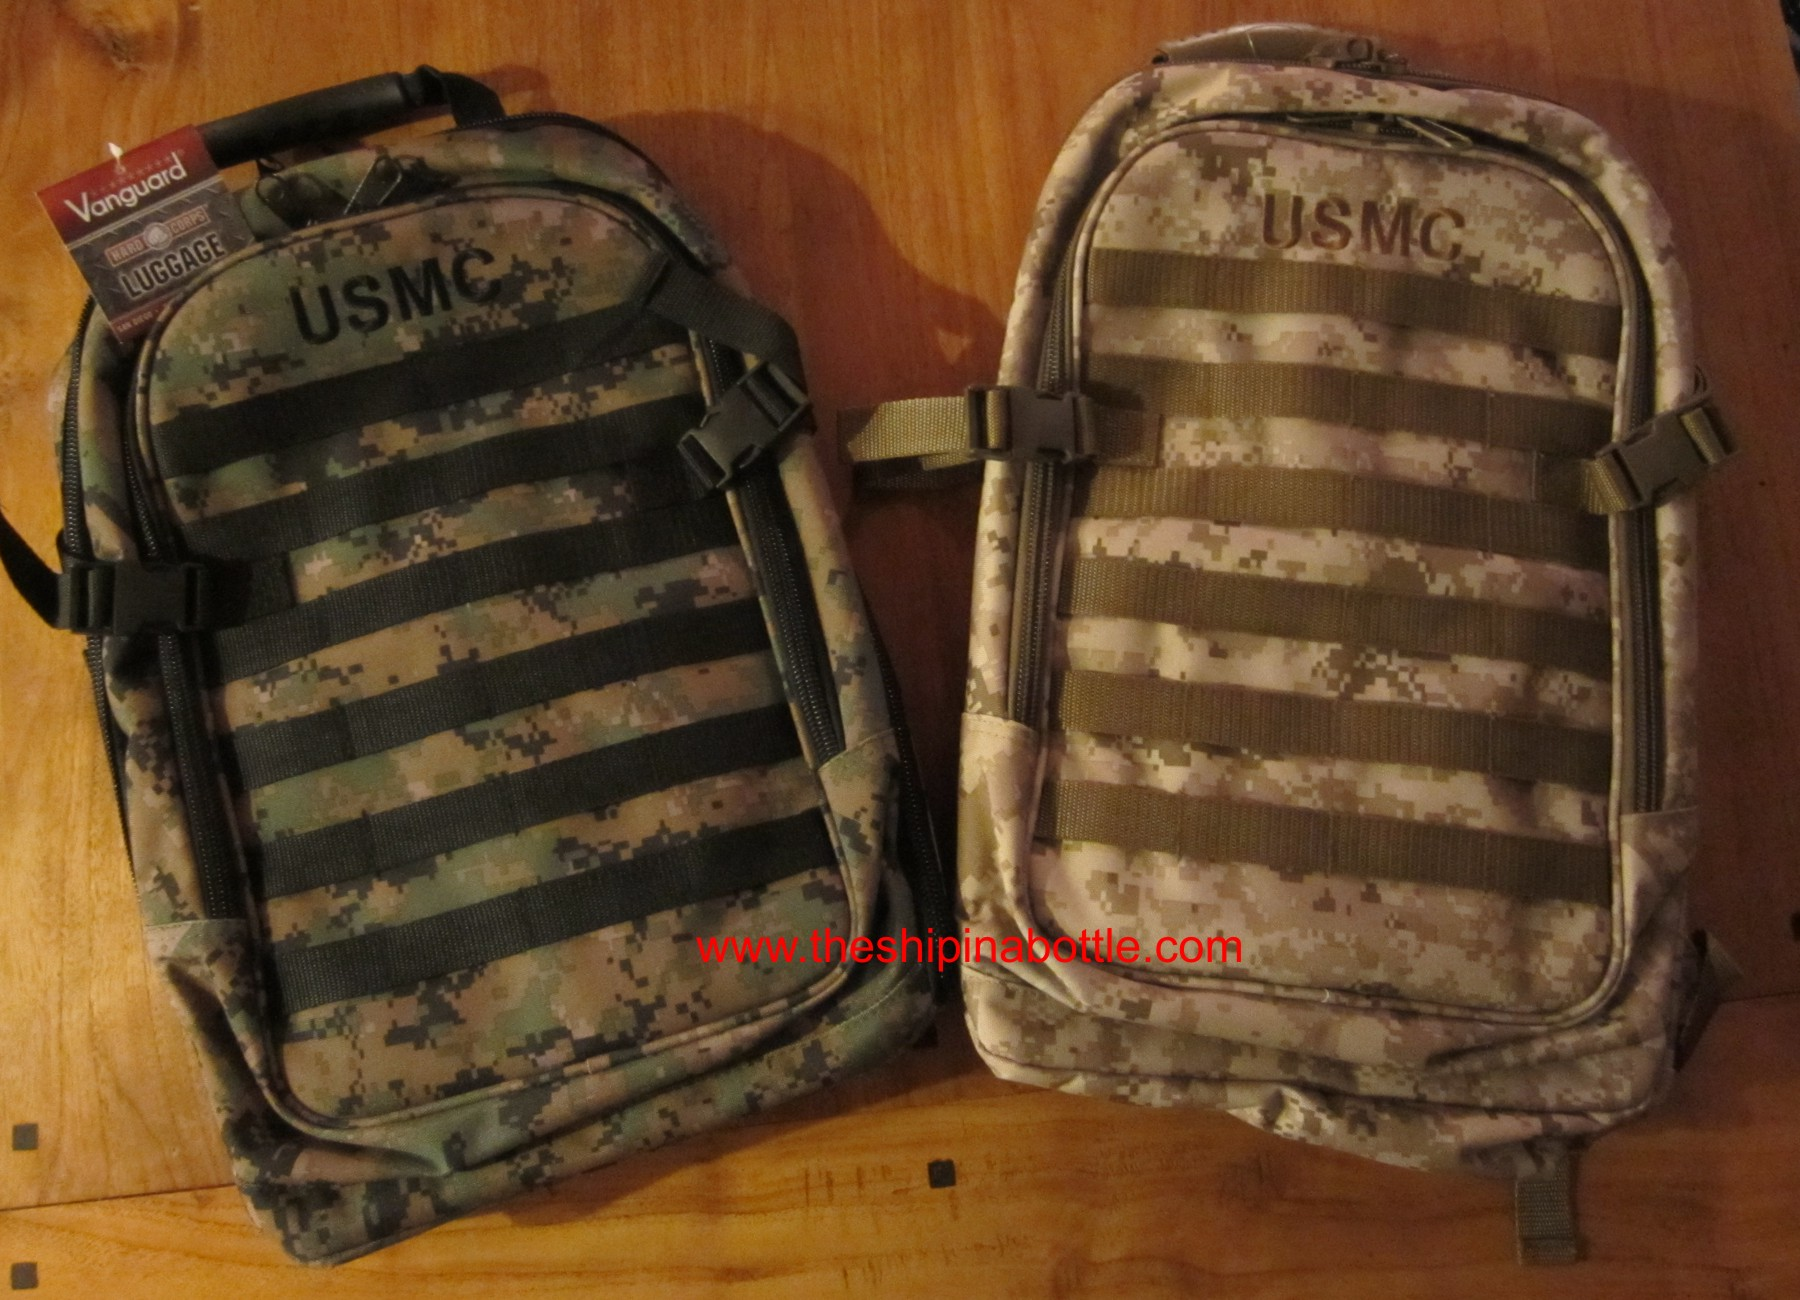 USMC Backpacks